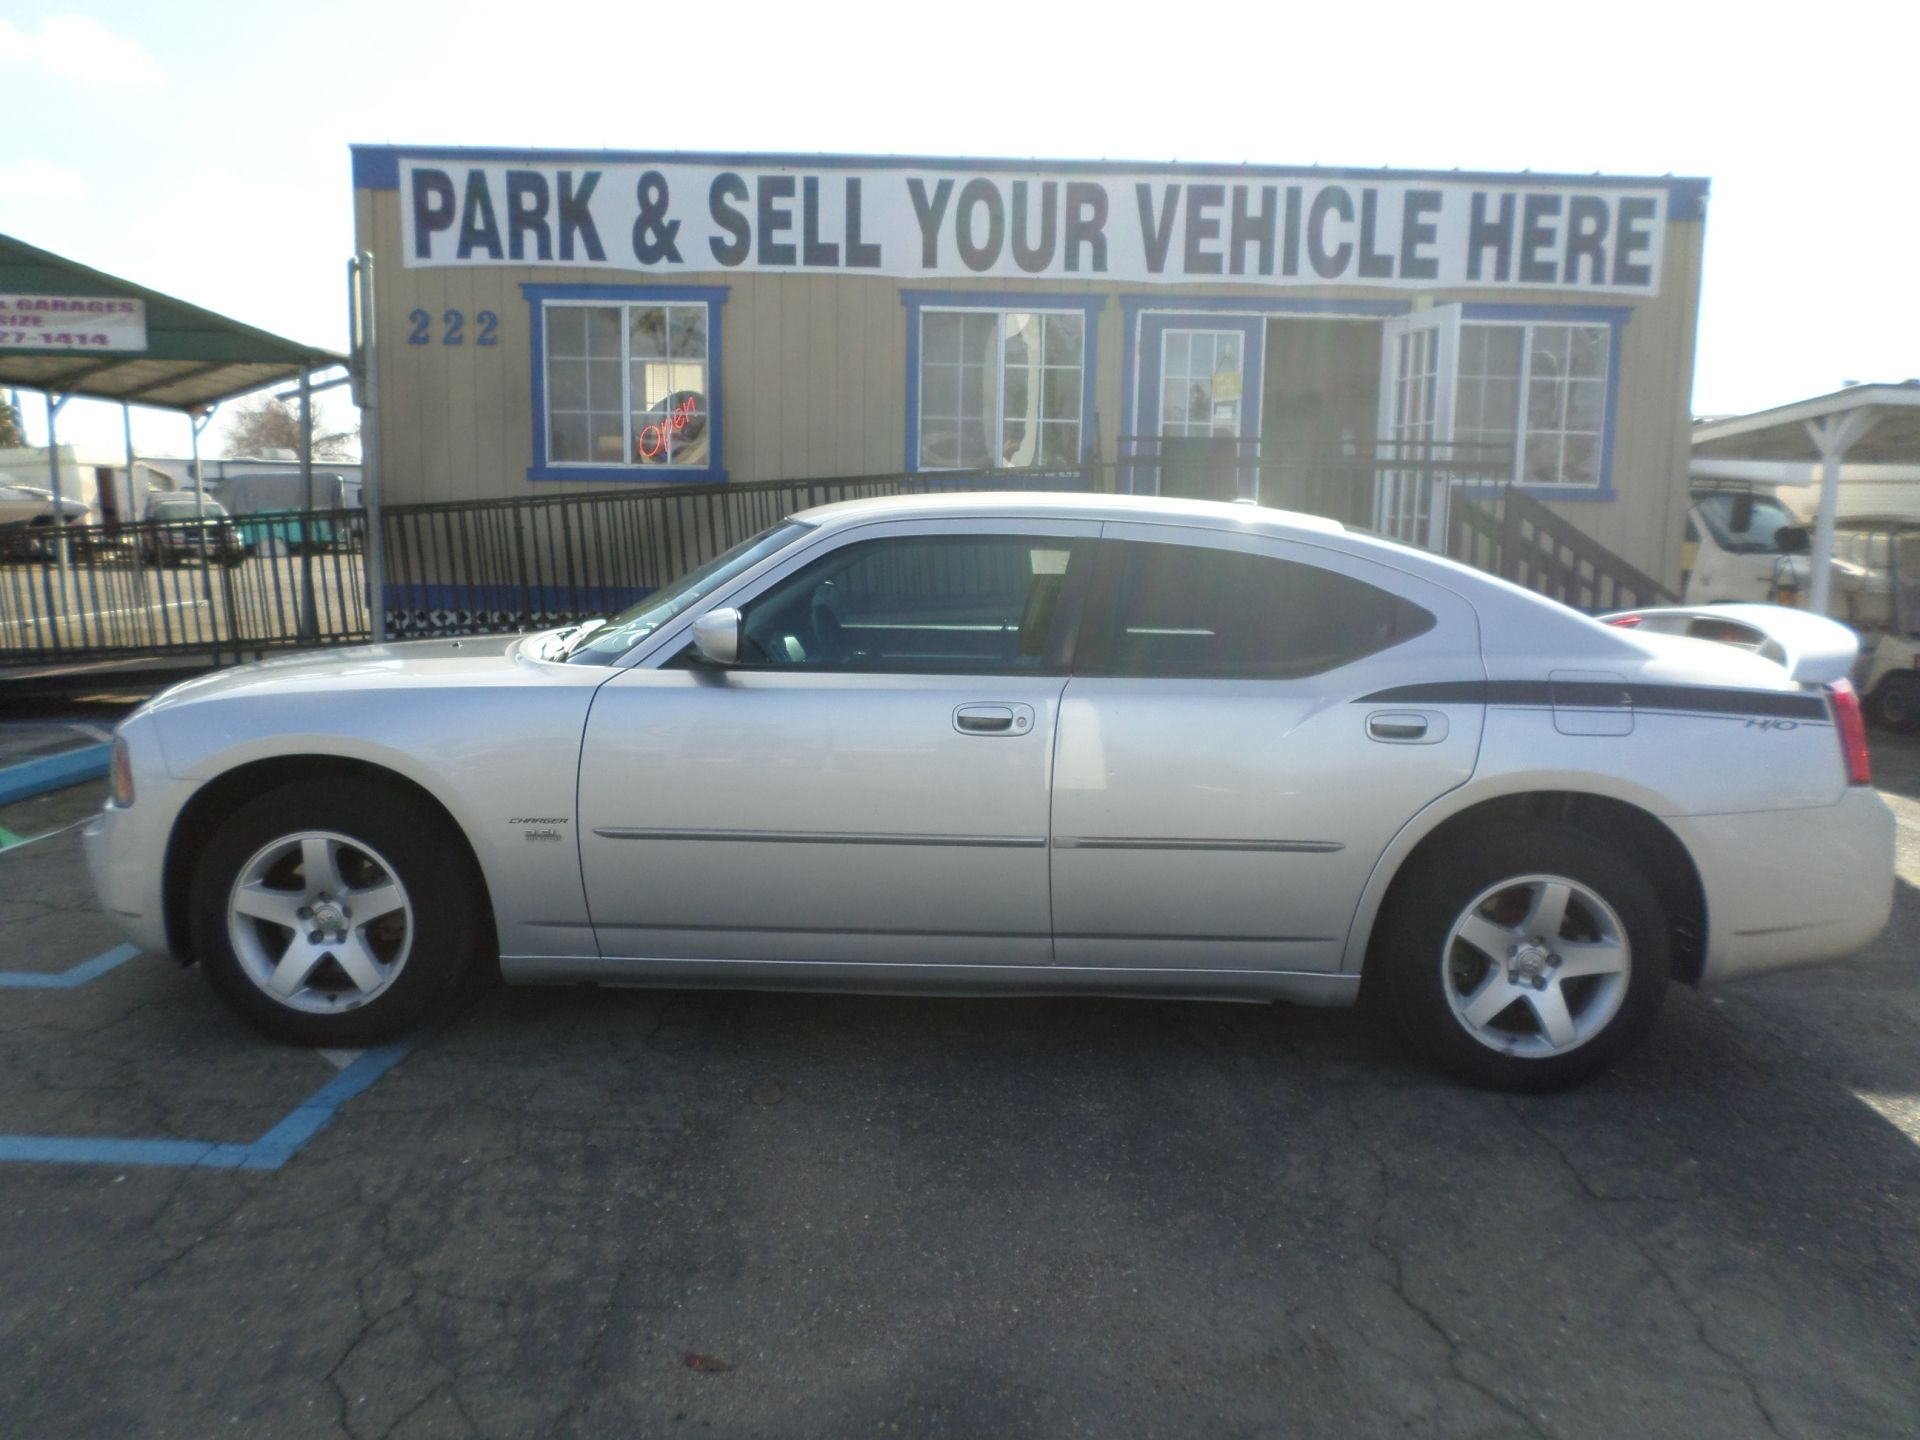 Car For Sale 2010 Dodge Charger Sxt In Lodi Stockton Ca Dodge Charger Sxt Dodge Charger Charger Sxt